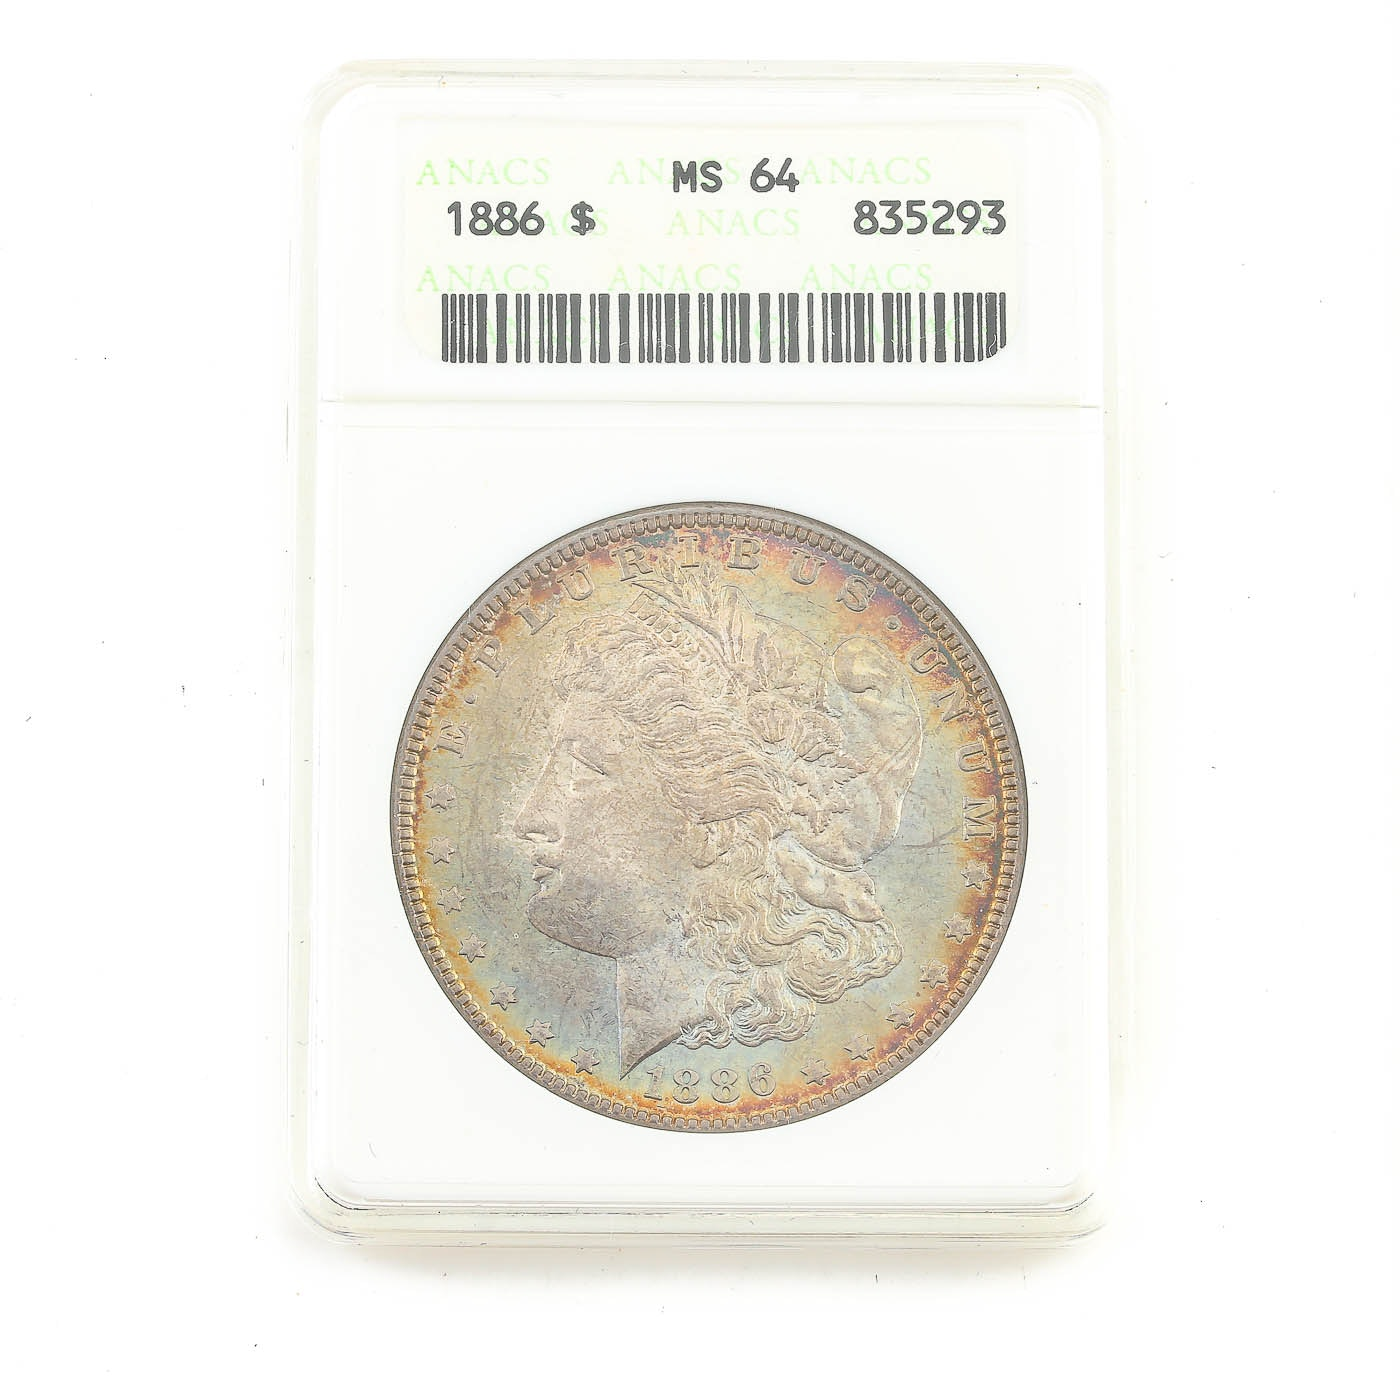 ANACS graded MS64 1886 Morgan Silver Dollar